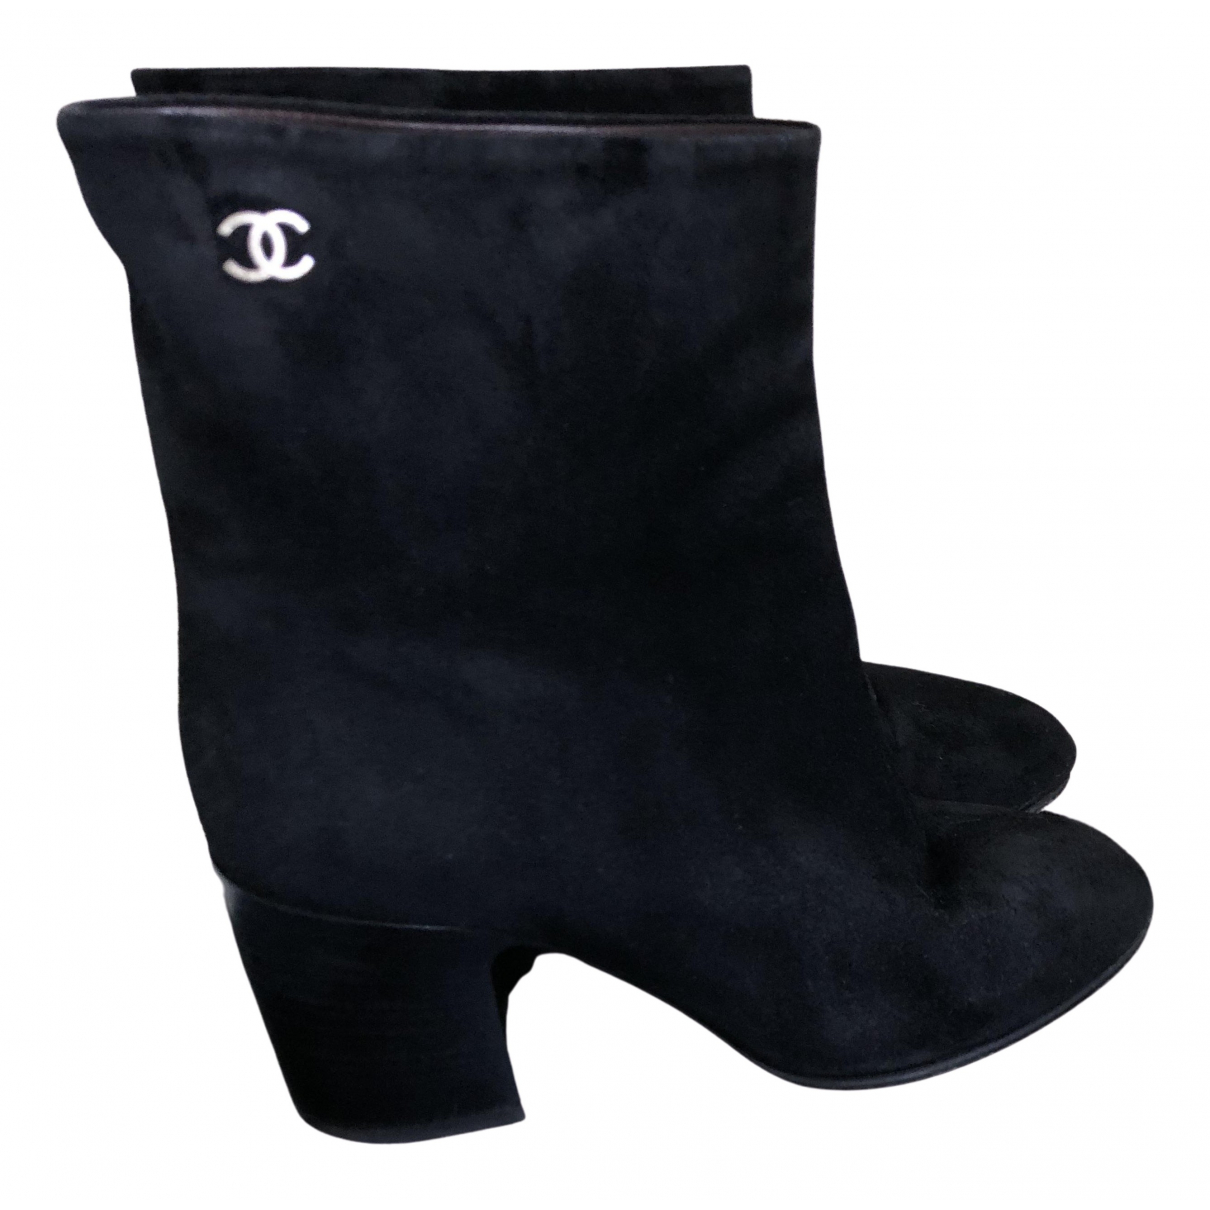 Chanel \N Black Leather Boots for Women 37.5 EU